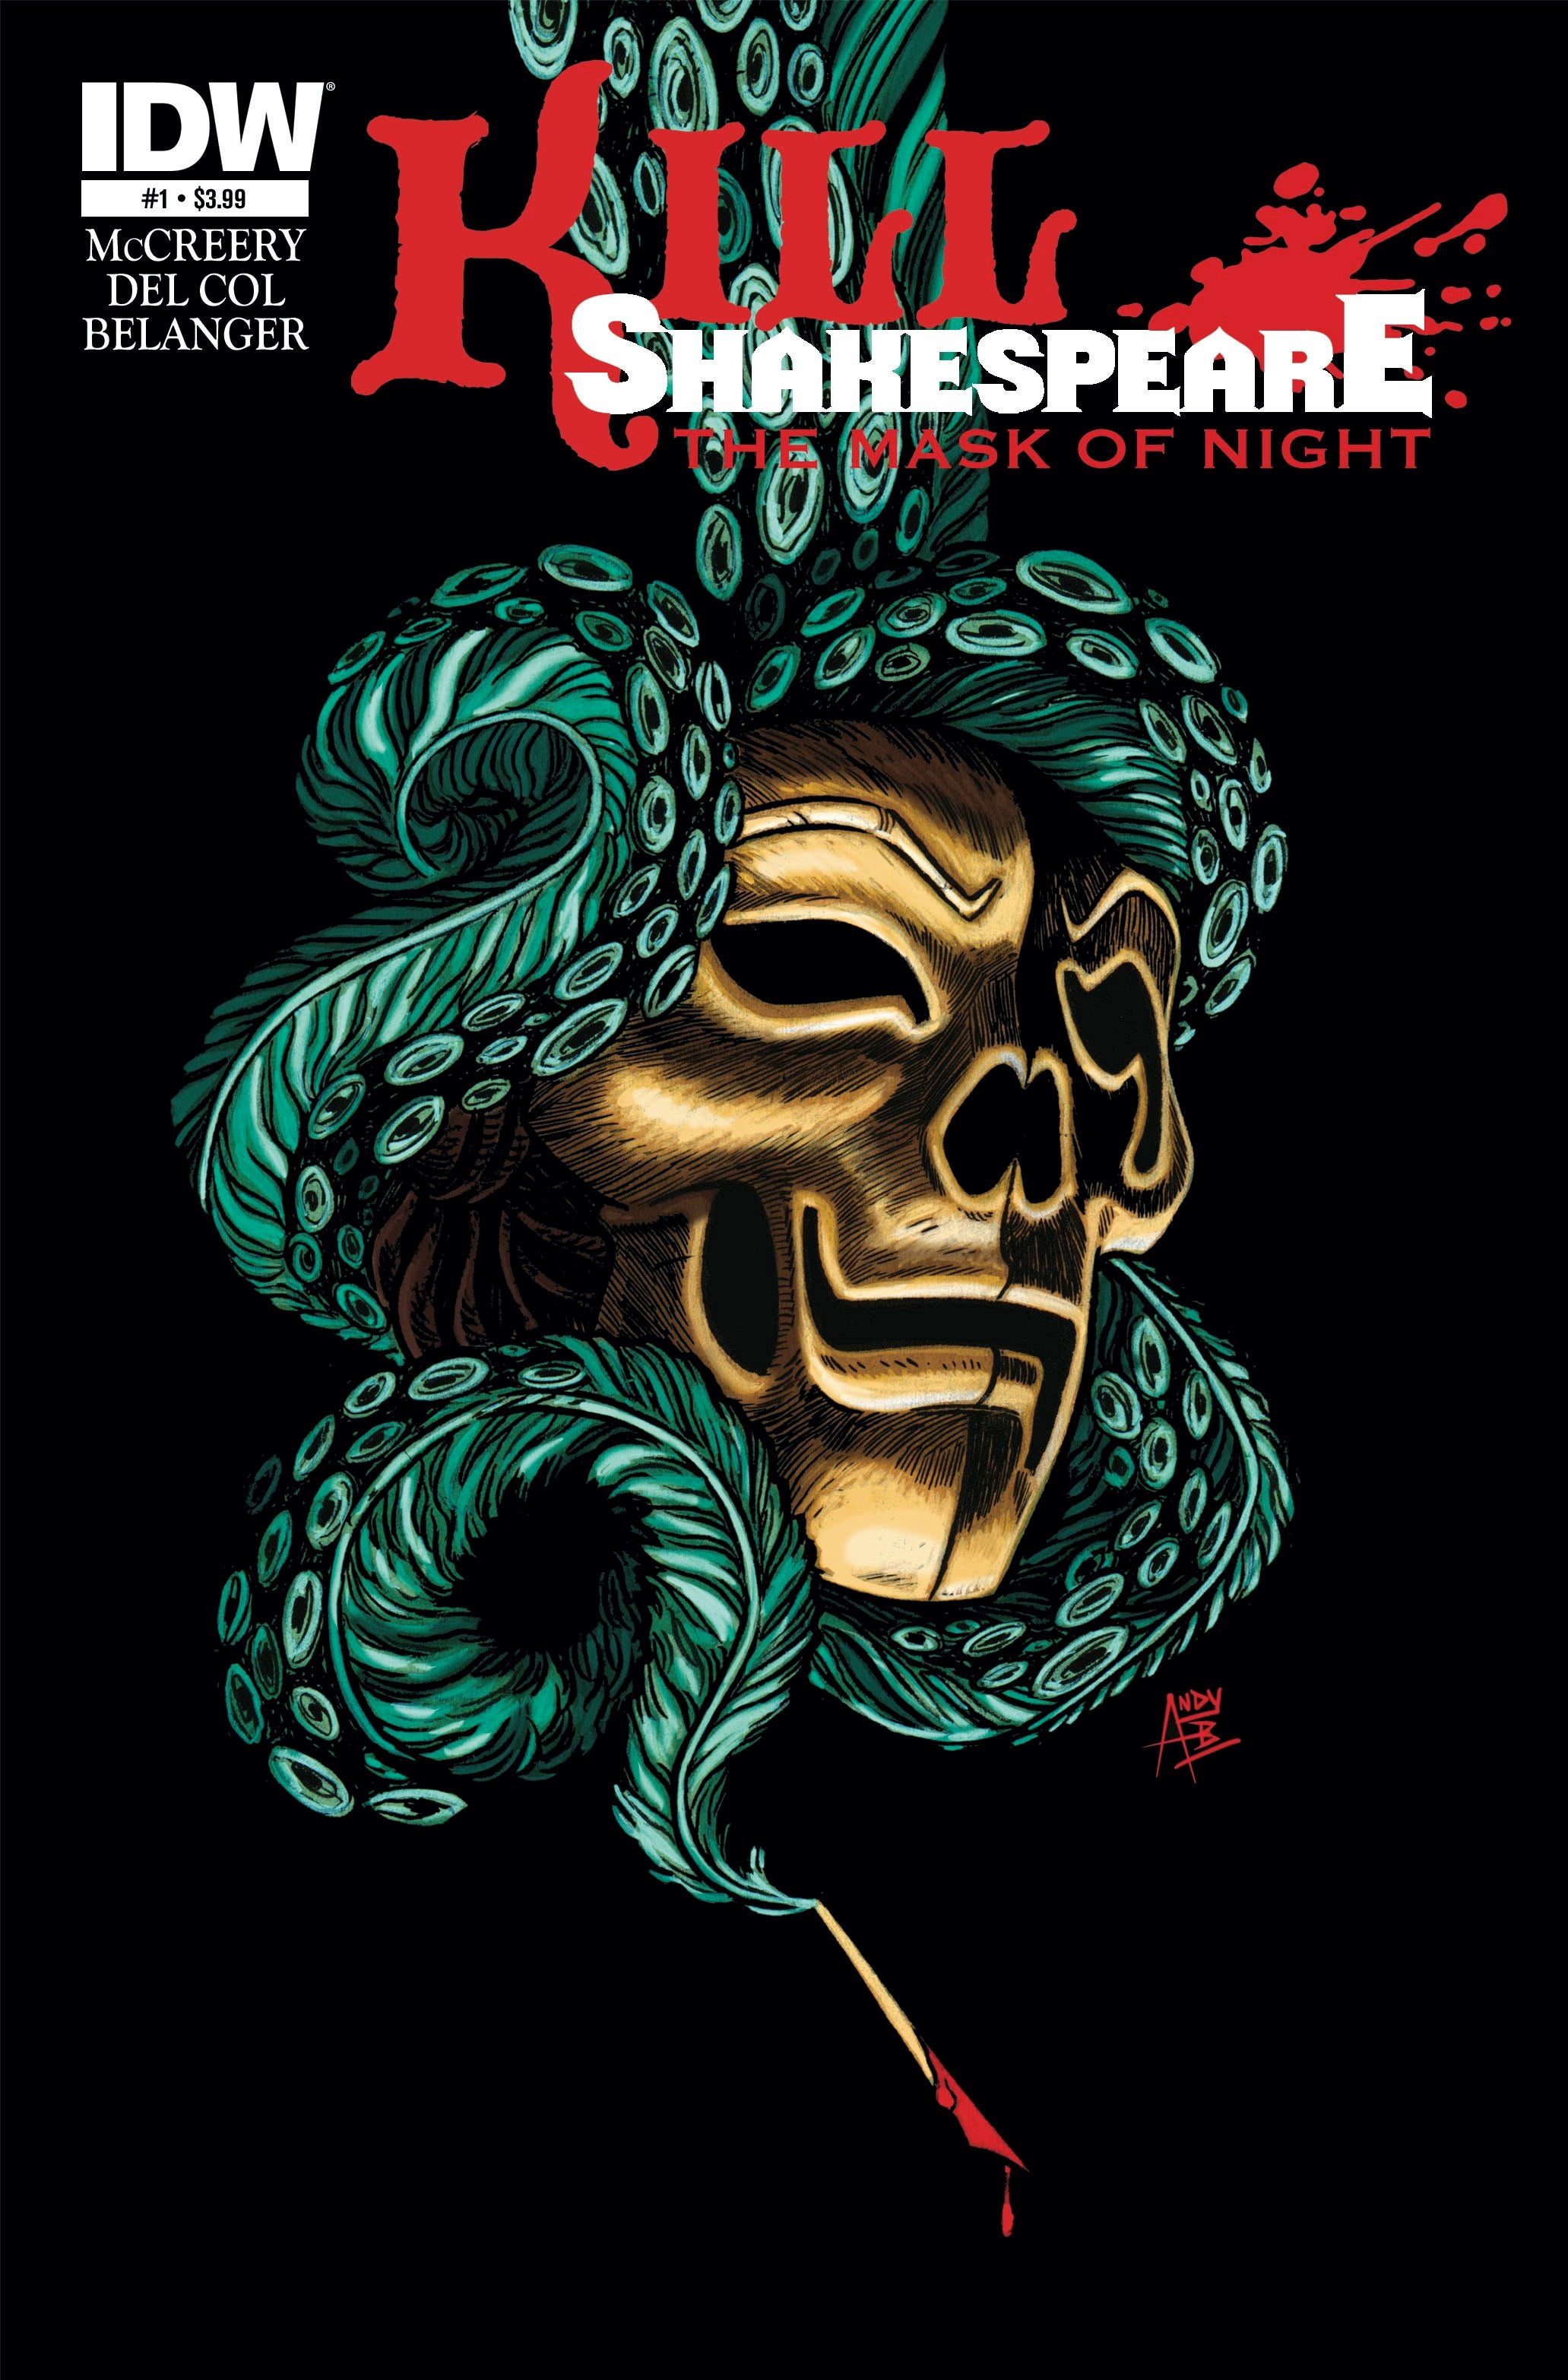 kill-shakespeare-mask-of-night